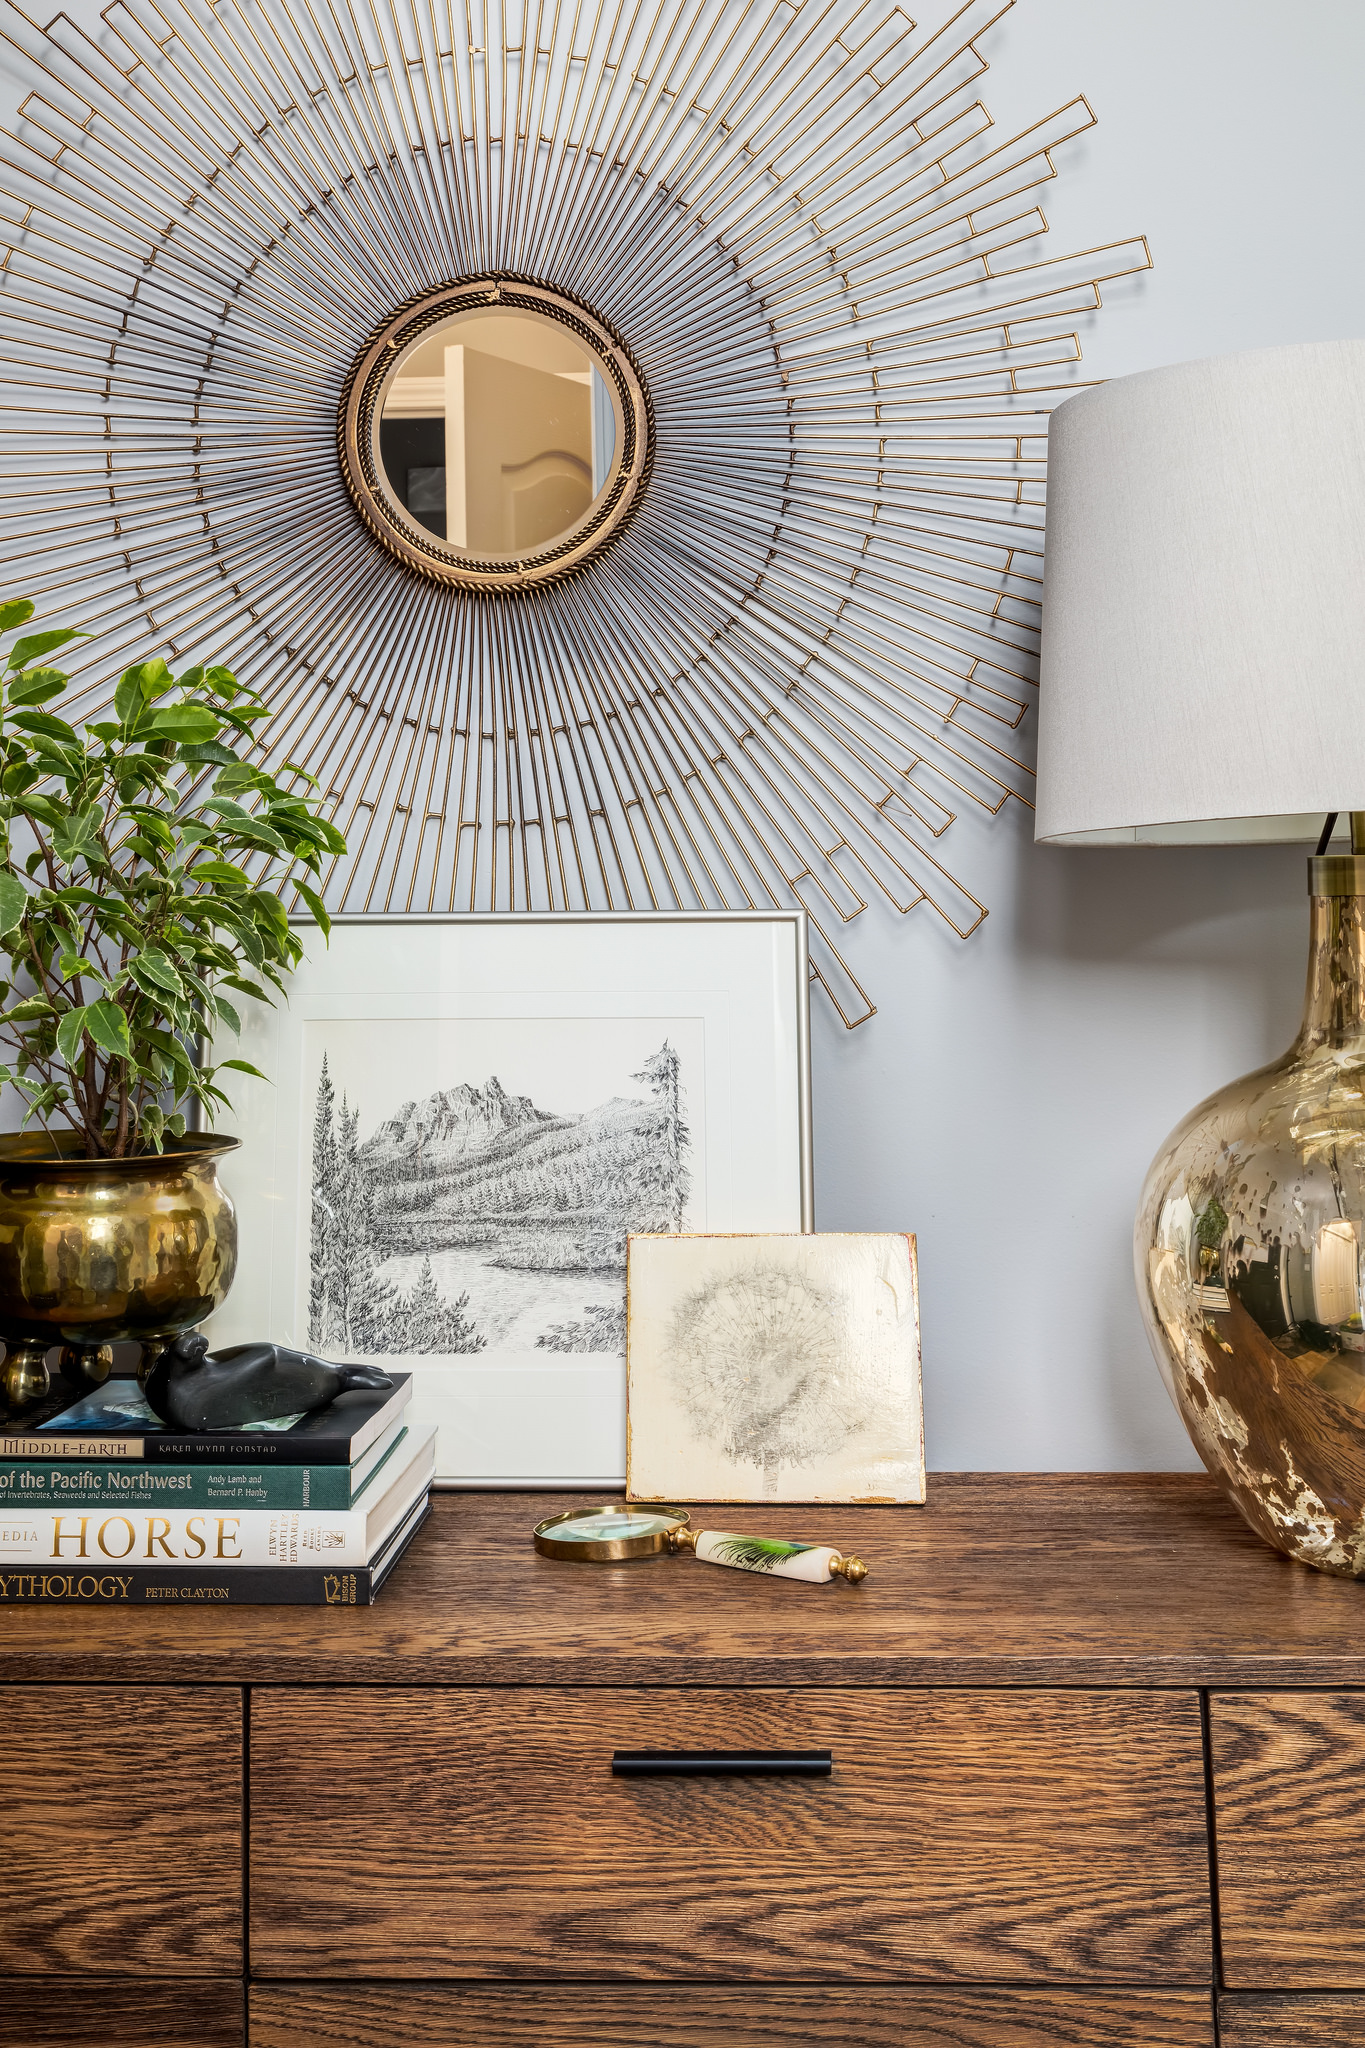 Collection of artifacts and art on a mid century console chest with a gold stardust mirror and a reflective gold lamp.